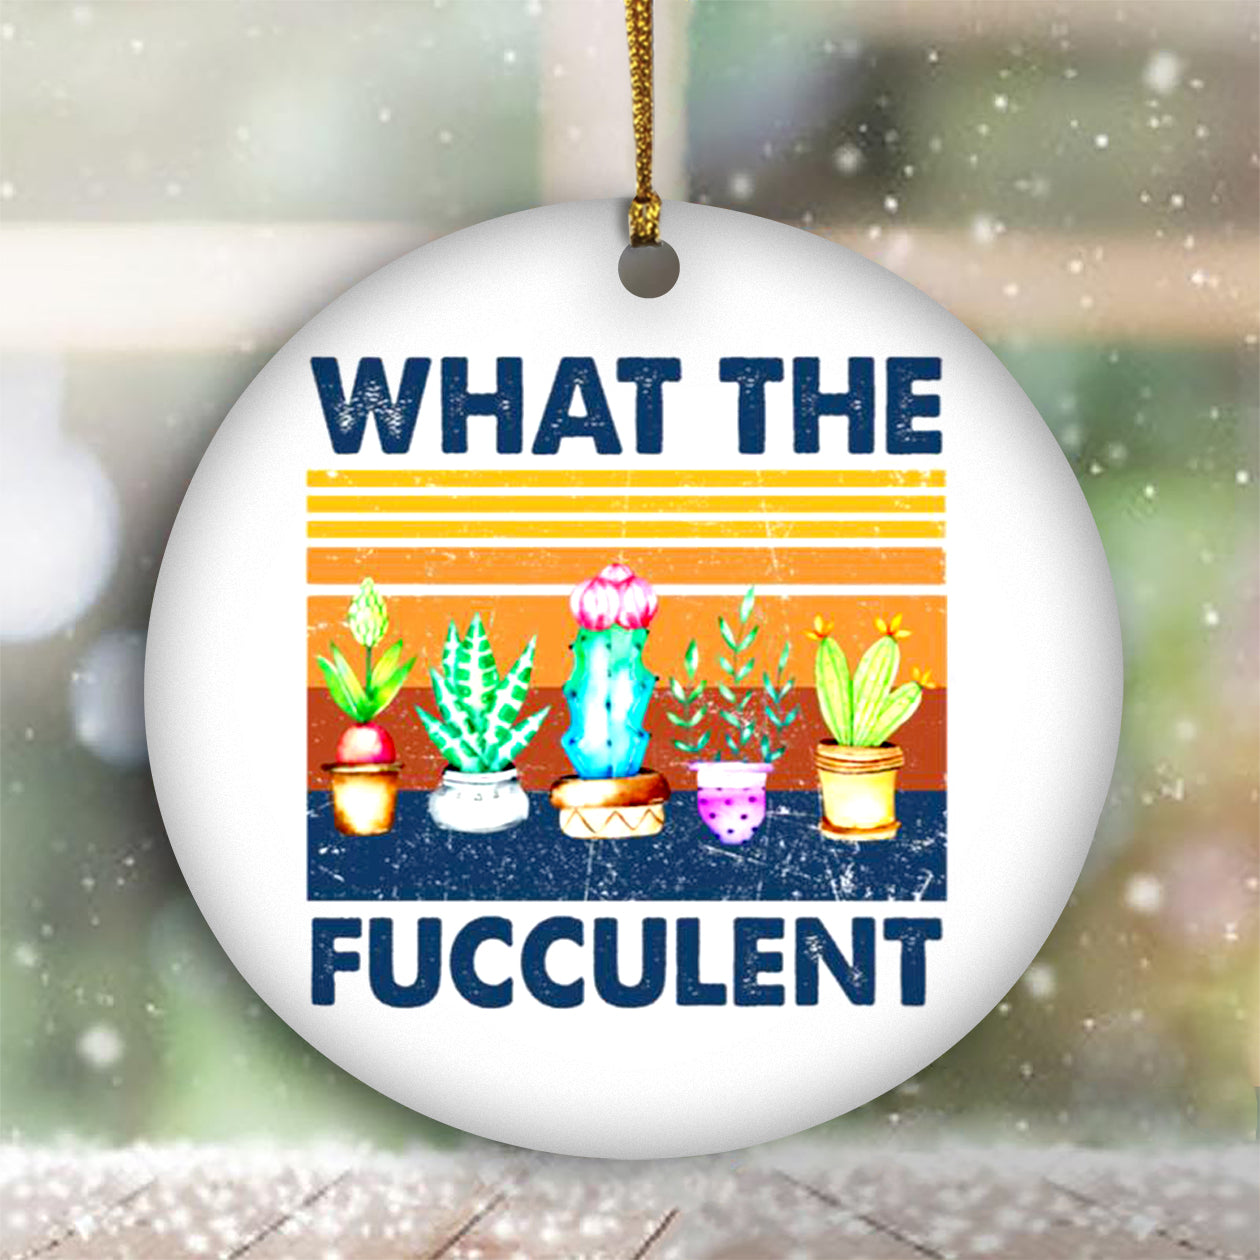 What The Fucculent Cactus Ornament Vintage Christmas Ornament Sets 2020